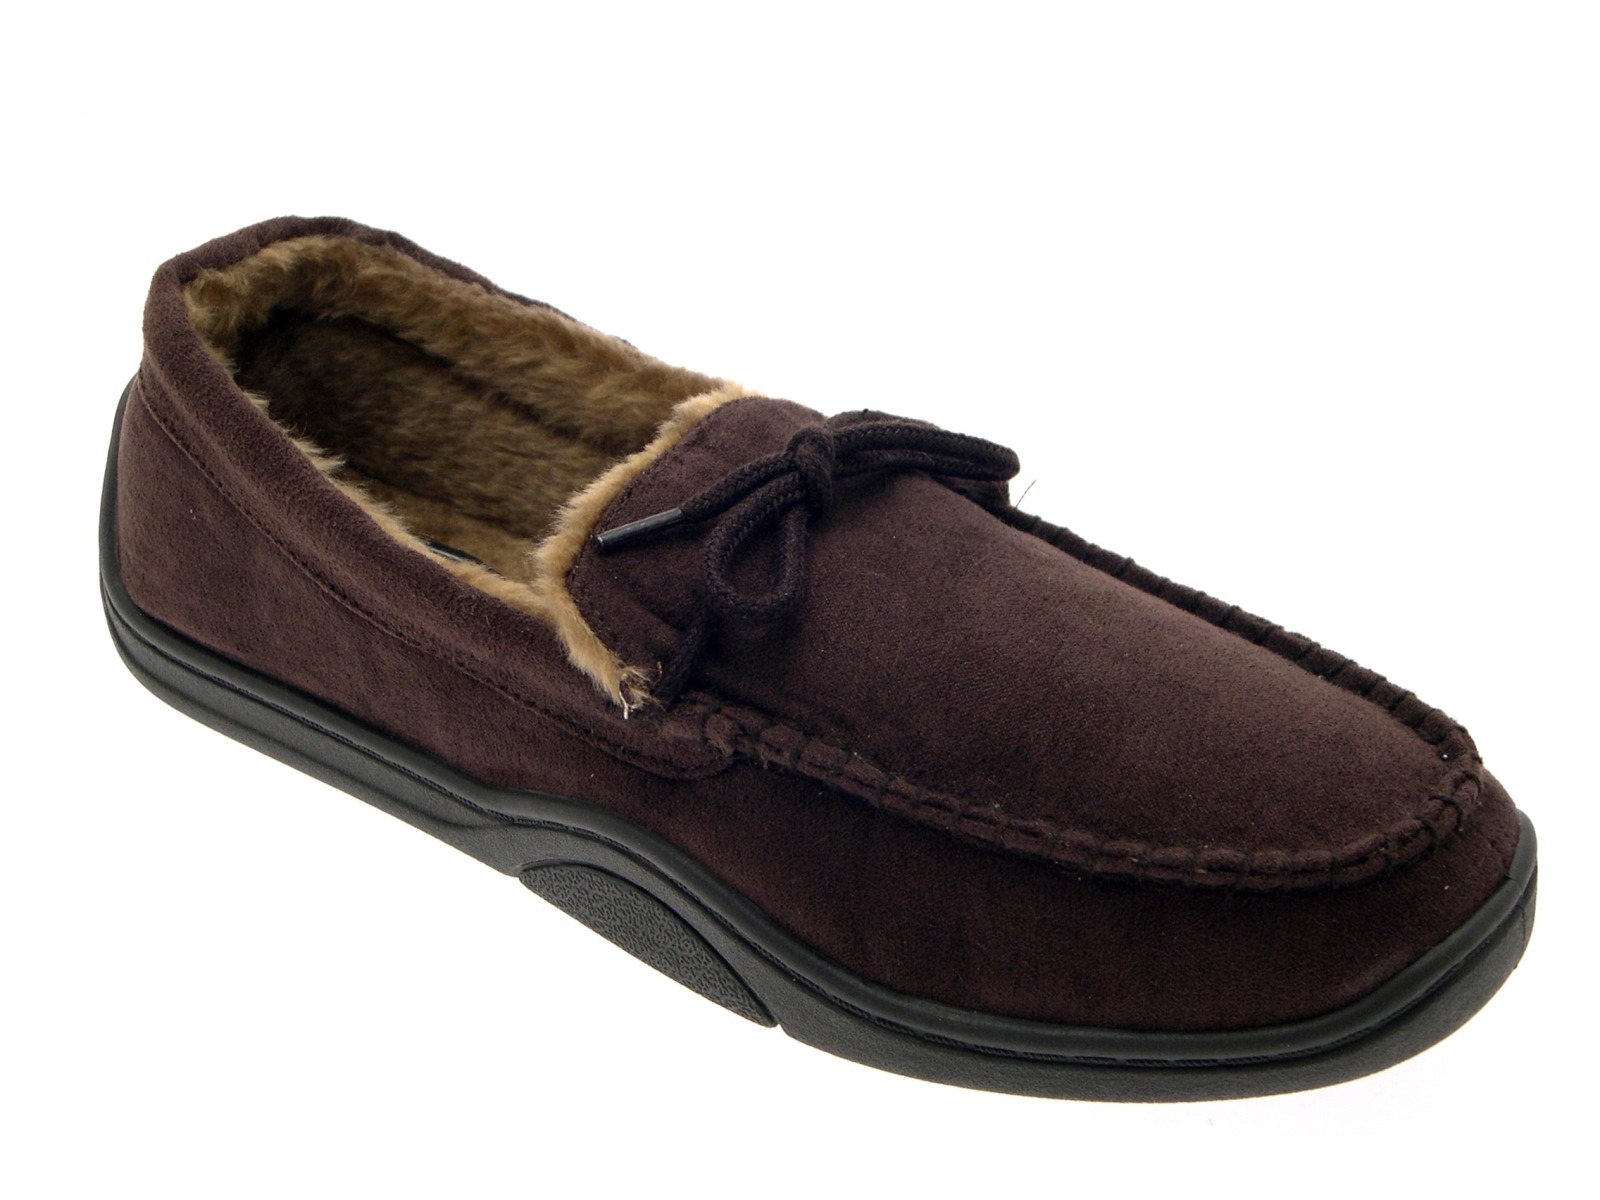 Mens Warm Slippers Moccasins Fauxn Suede Sheepskin Fur ...